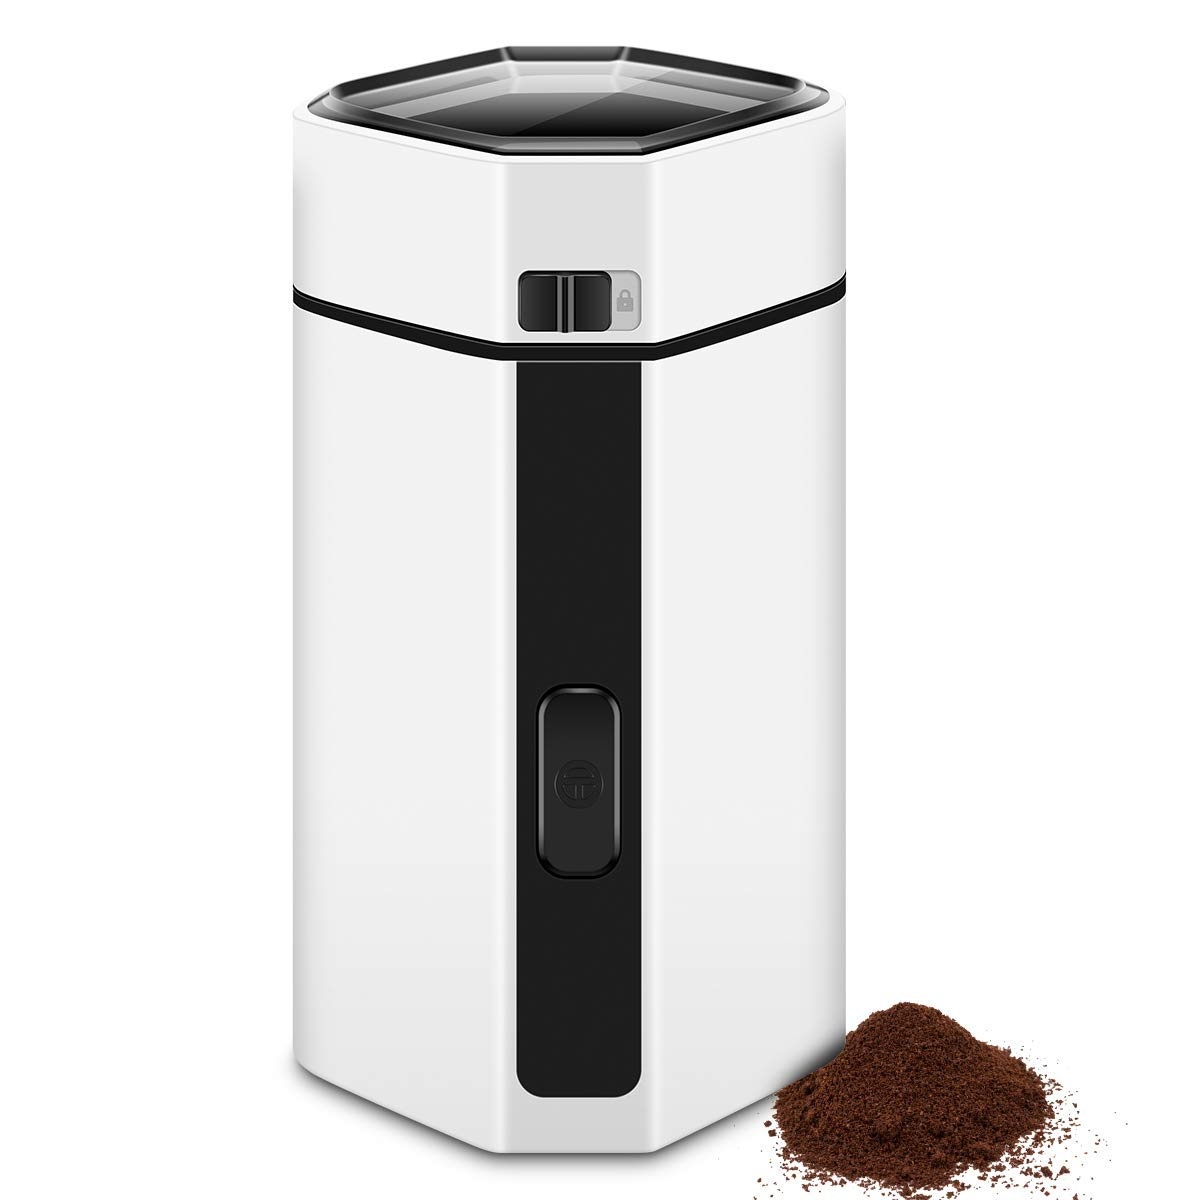 Electric Coffee Bean Grinder, CUSINAID Spice Nut Grinder Coffee with Stainless Steel Blade for Coffee Grounds, Grains, 50g Big Capacity White by CUSINAID